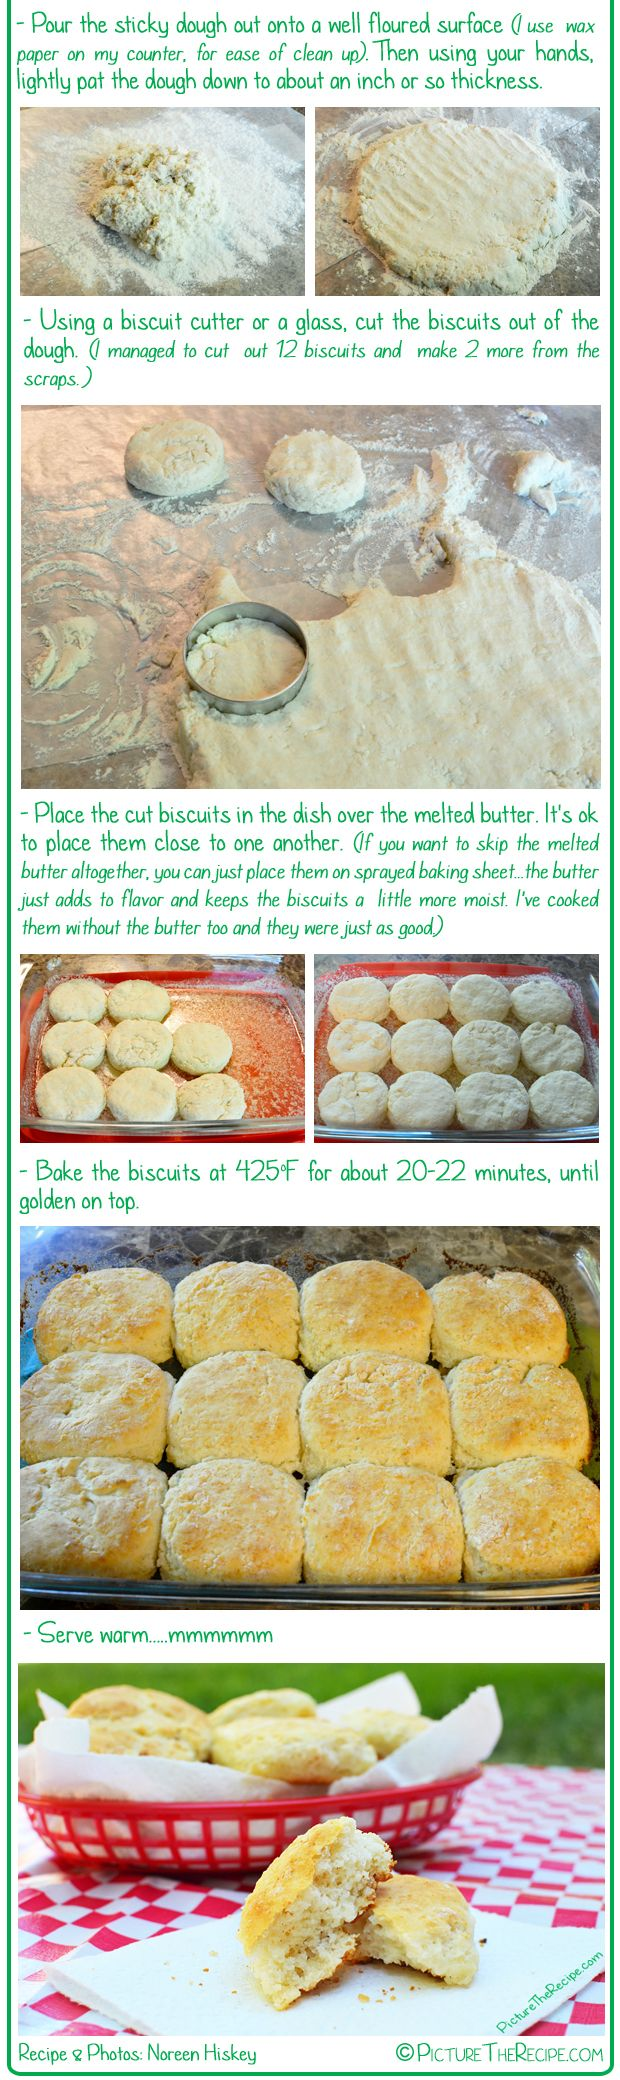 7Up (or Sprite) Biscuits - directions to make 12 (+ a couple more), slightly thinner, from the same recipe =)